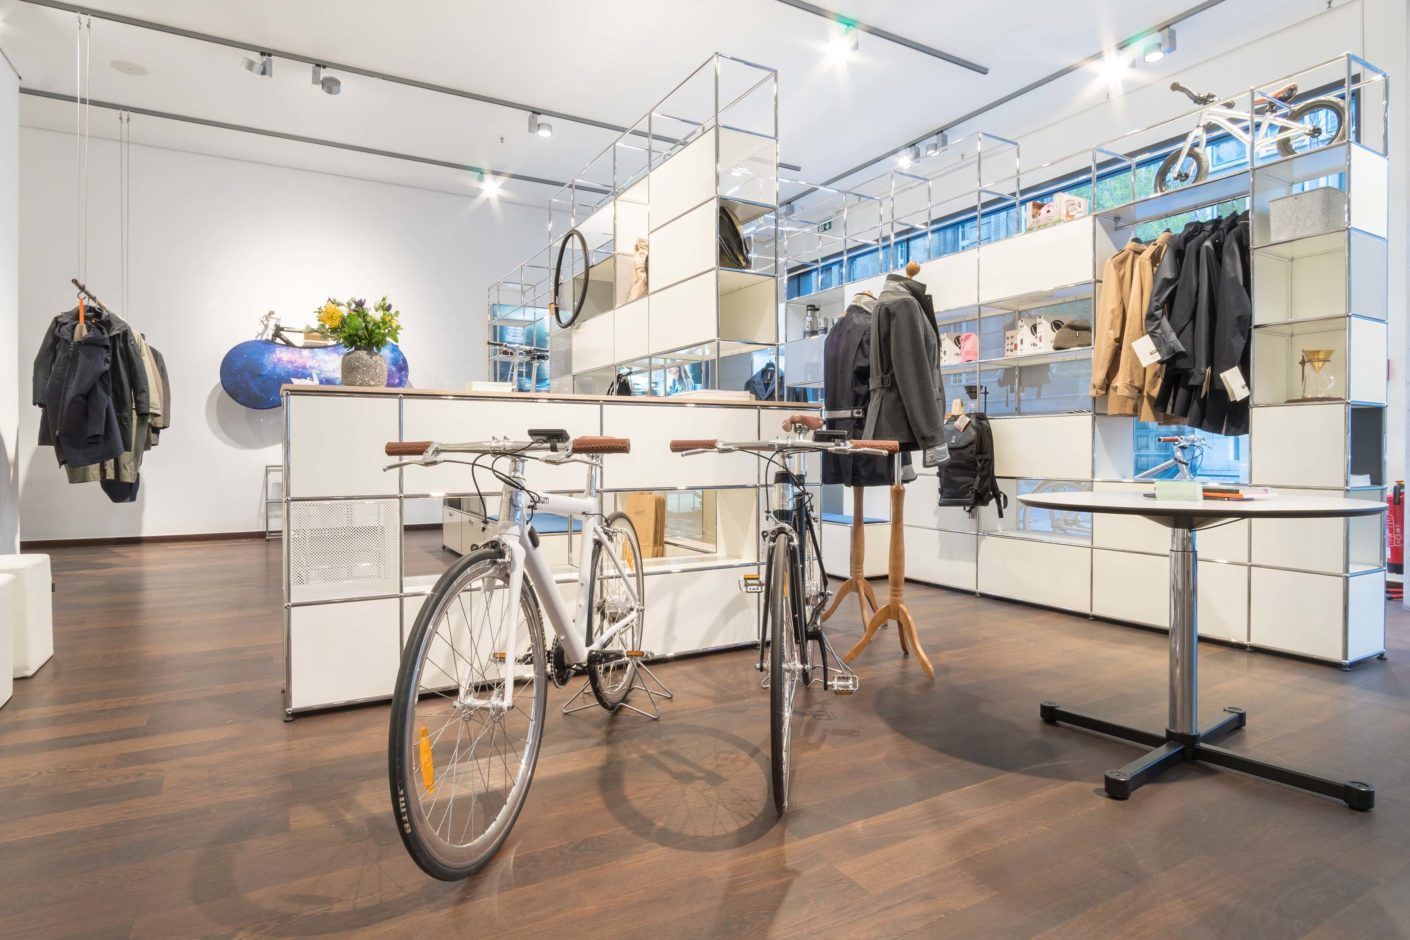 Bicycles and accessories will be on display at the AWSUM bicycle manufactory in Düsseldorf's USM showroom.